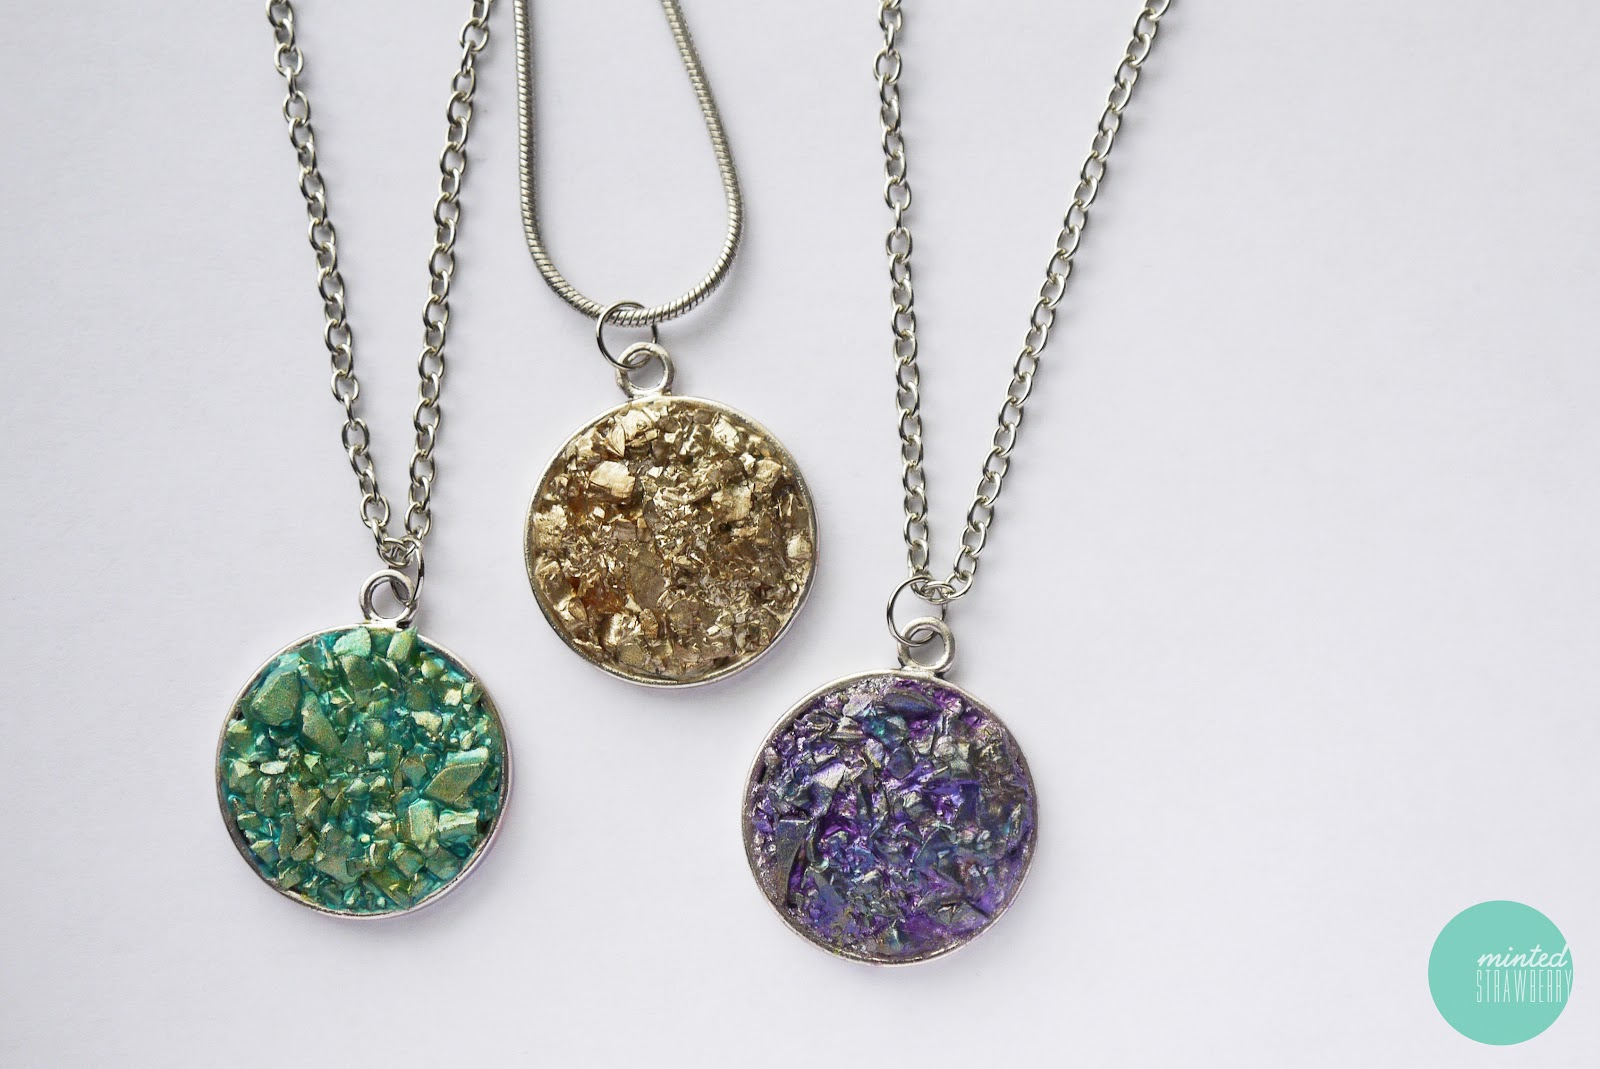 DIY: Faux Druzy Necklace - Minted Strawberry